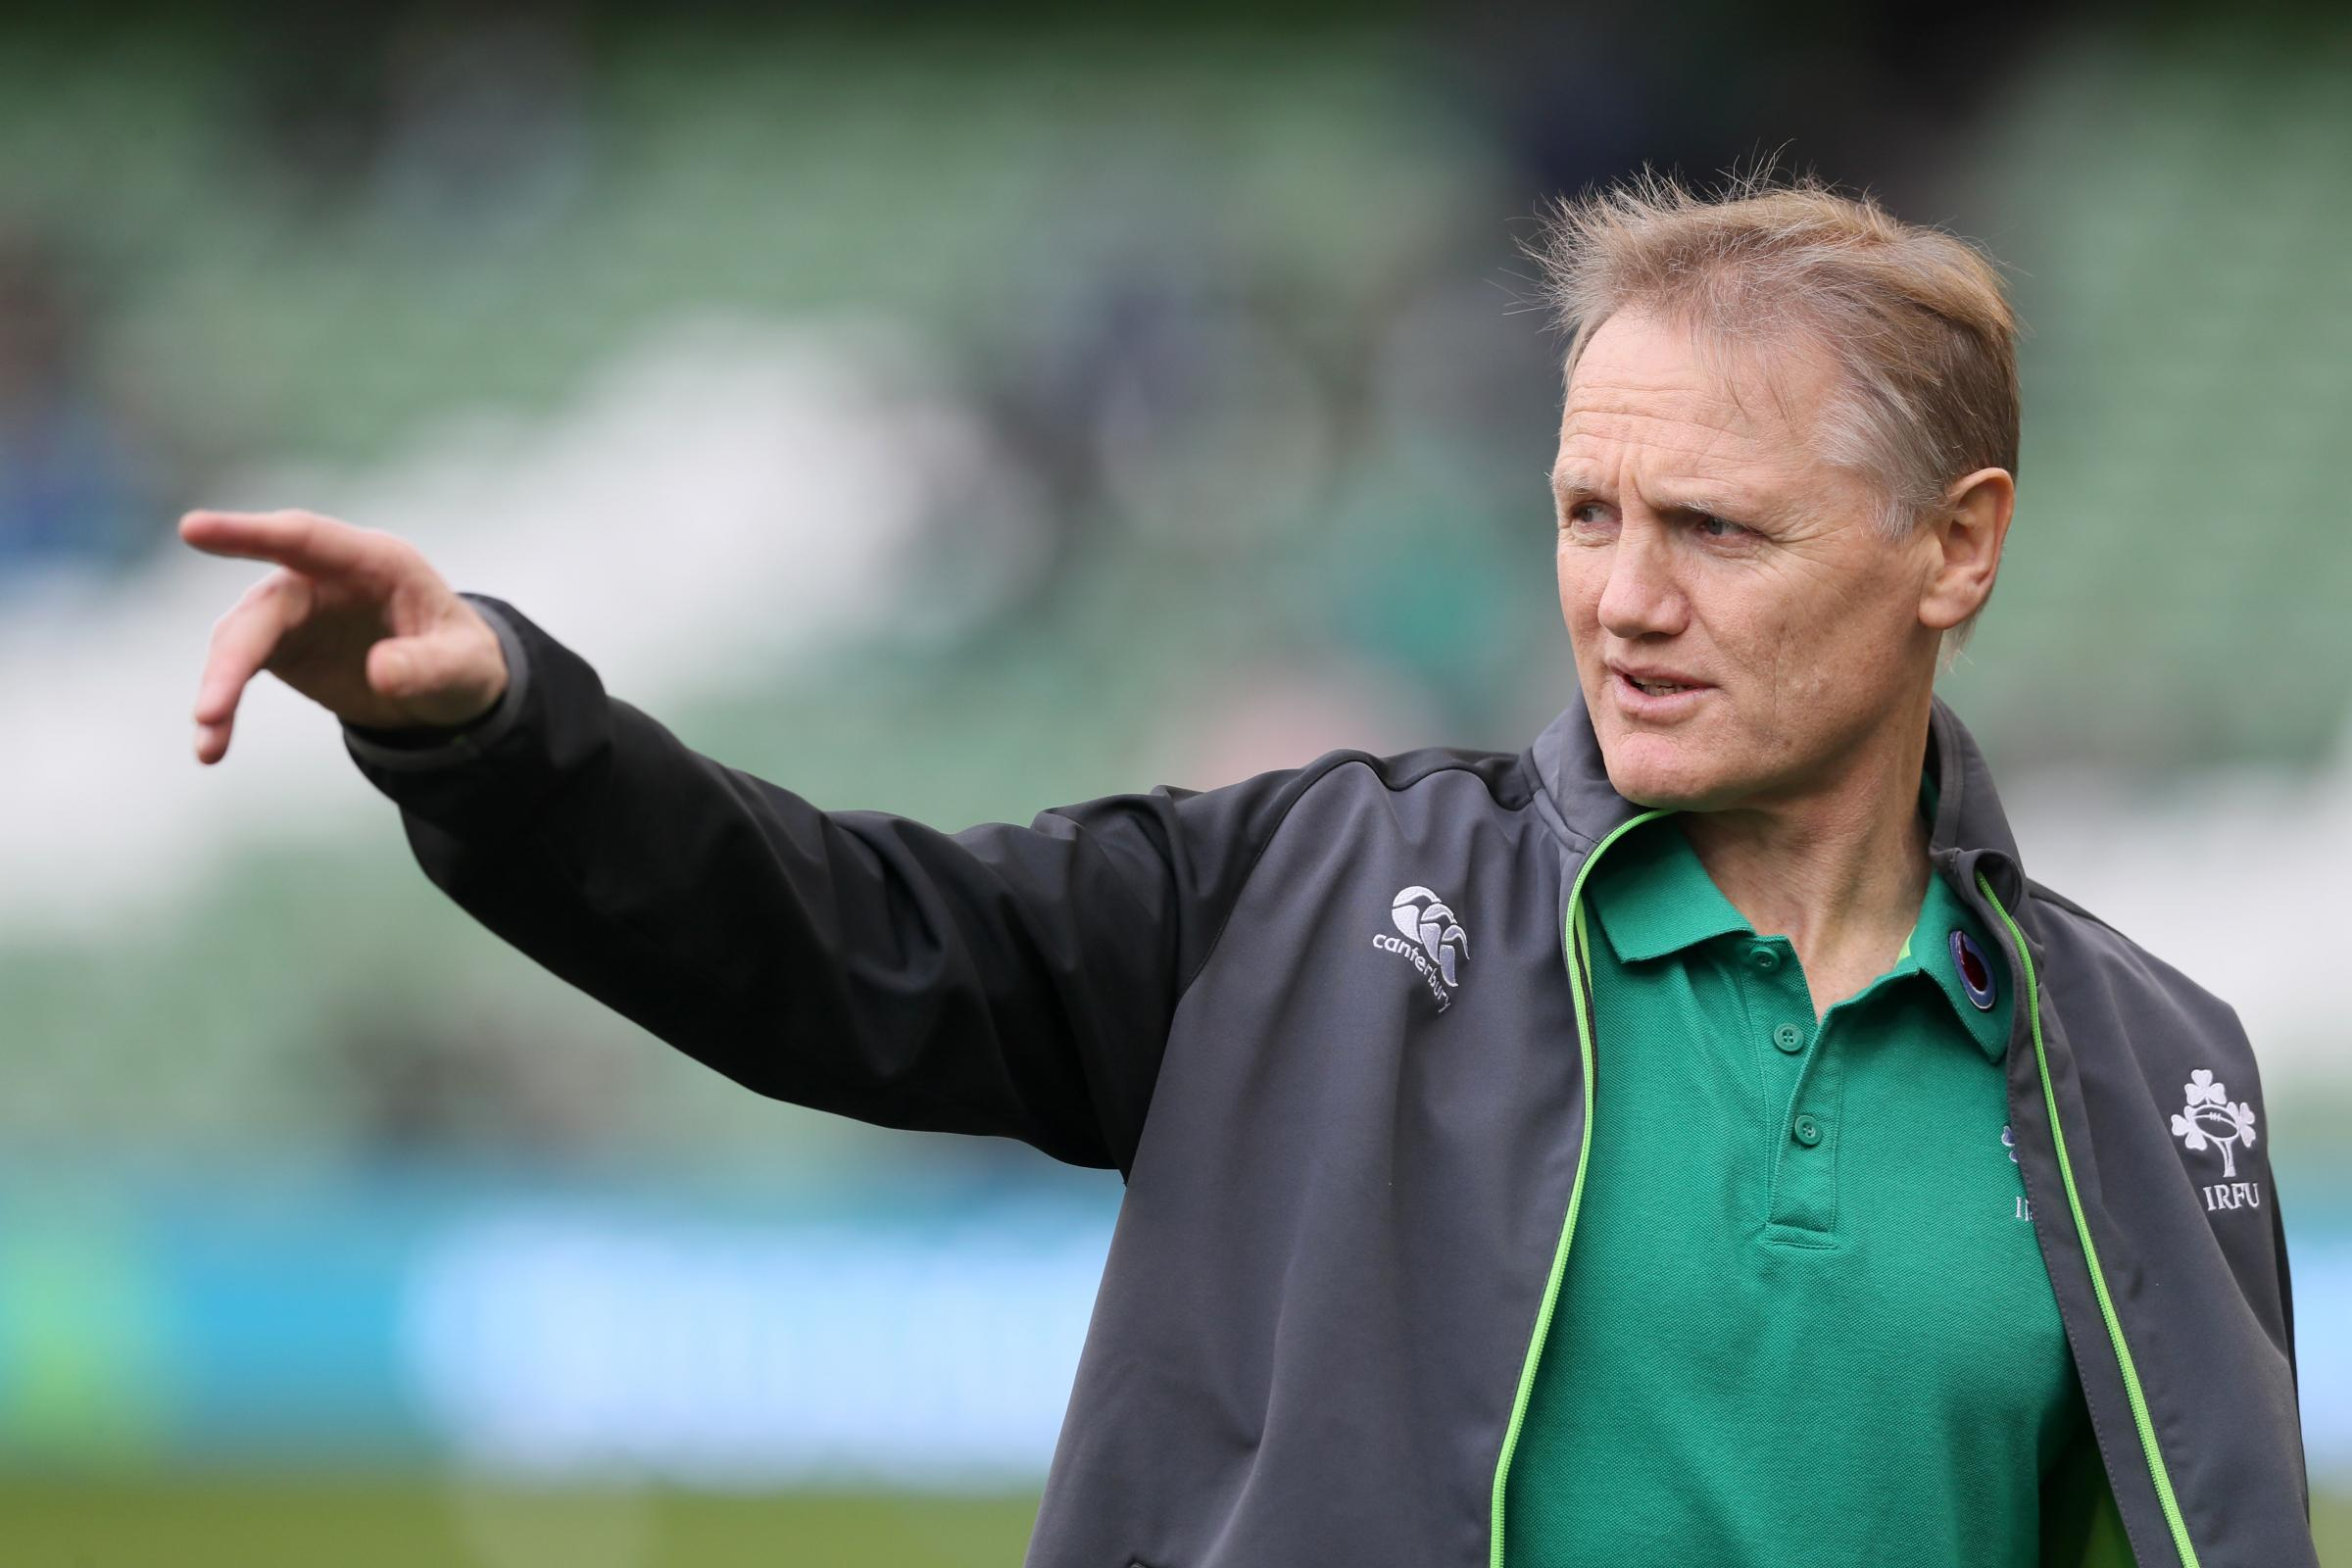 Joe Schmidt, pictured, has been hailed as the best coach in world rugby (Brian Lawless/PA)